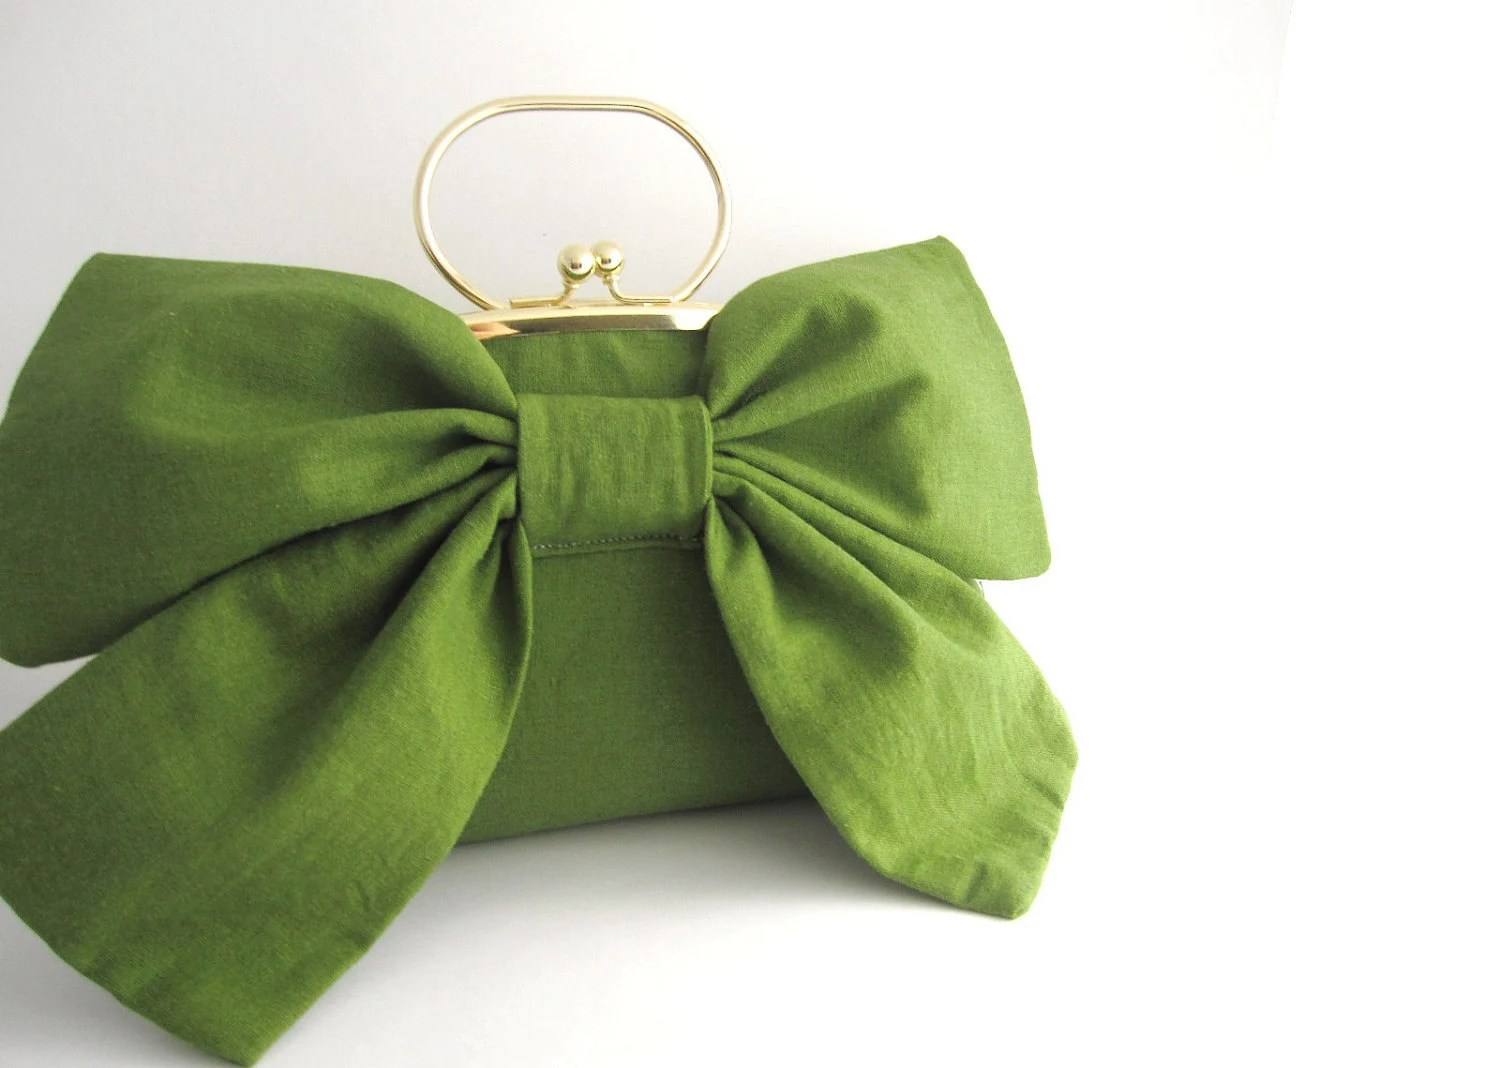 Large Bow Clutch with Handle - green linen